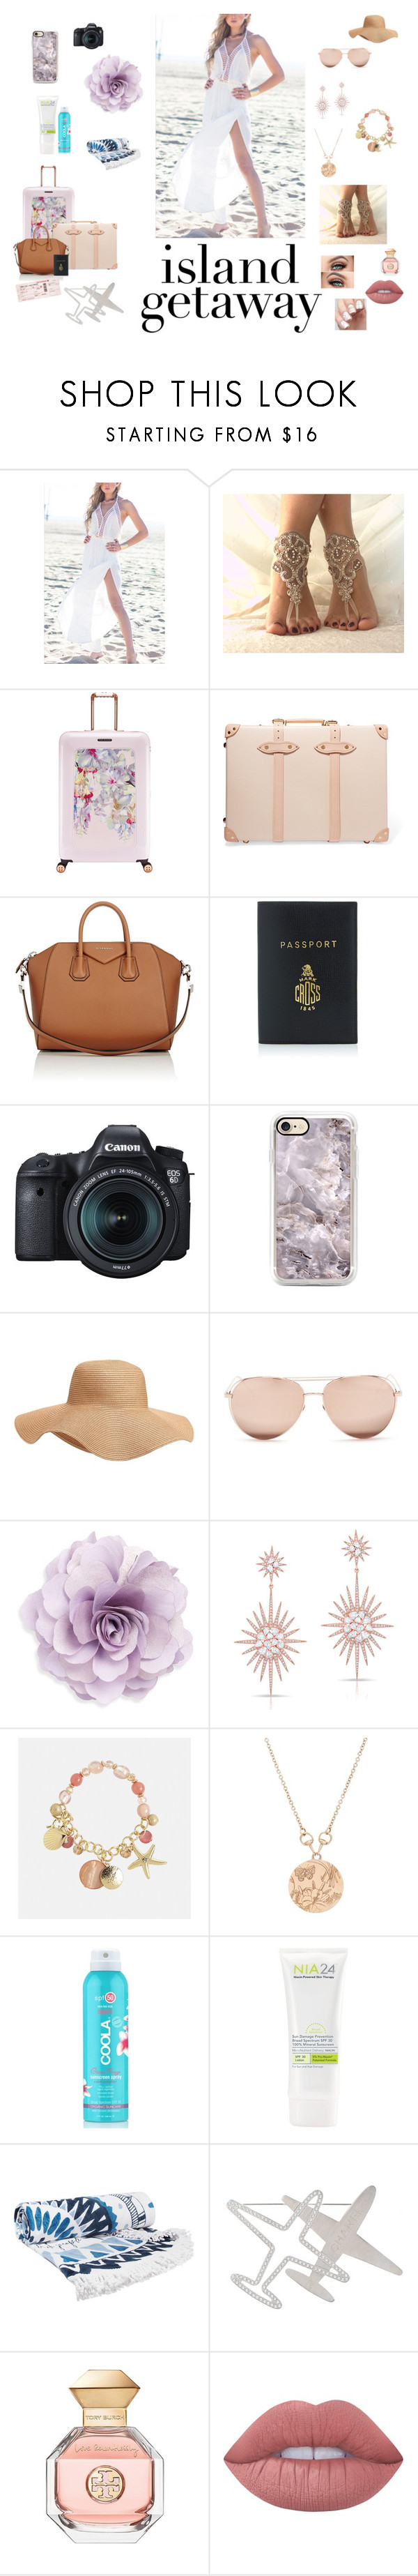 """""""xdfcbkhjnml"""" by manaur06 ❤ liked on Polyvore featuring Fauve, Ted Baker, Globe-Trotter, Givenchy, Mark Cross, Eos, Old Navy, Linda Farrow, Cara and Anne Sisteron"""